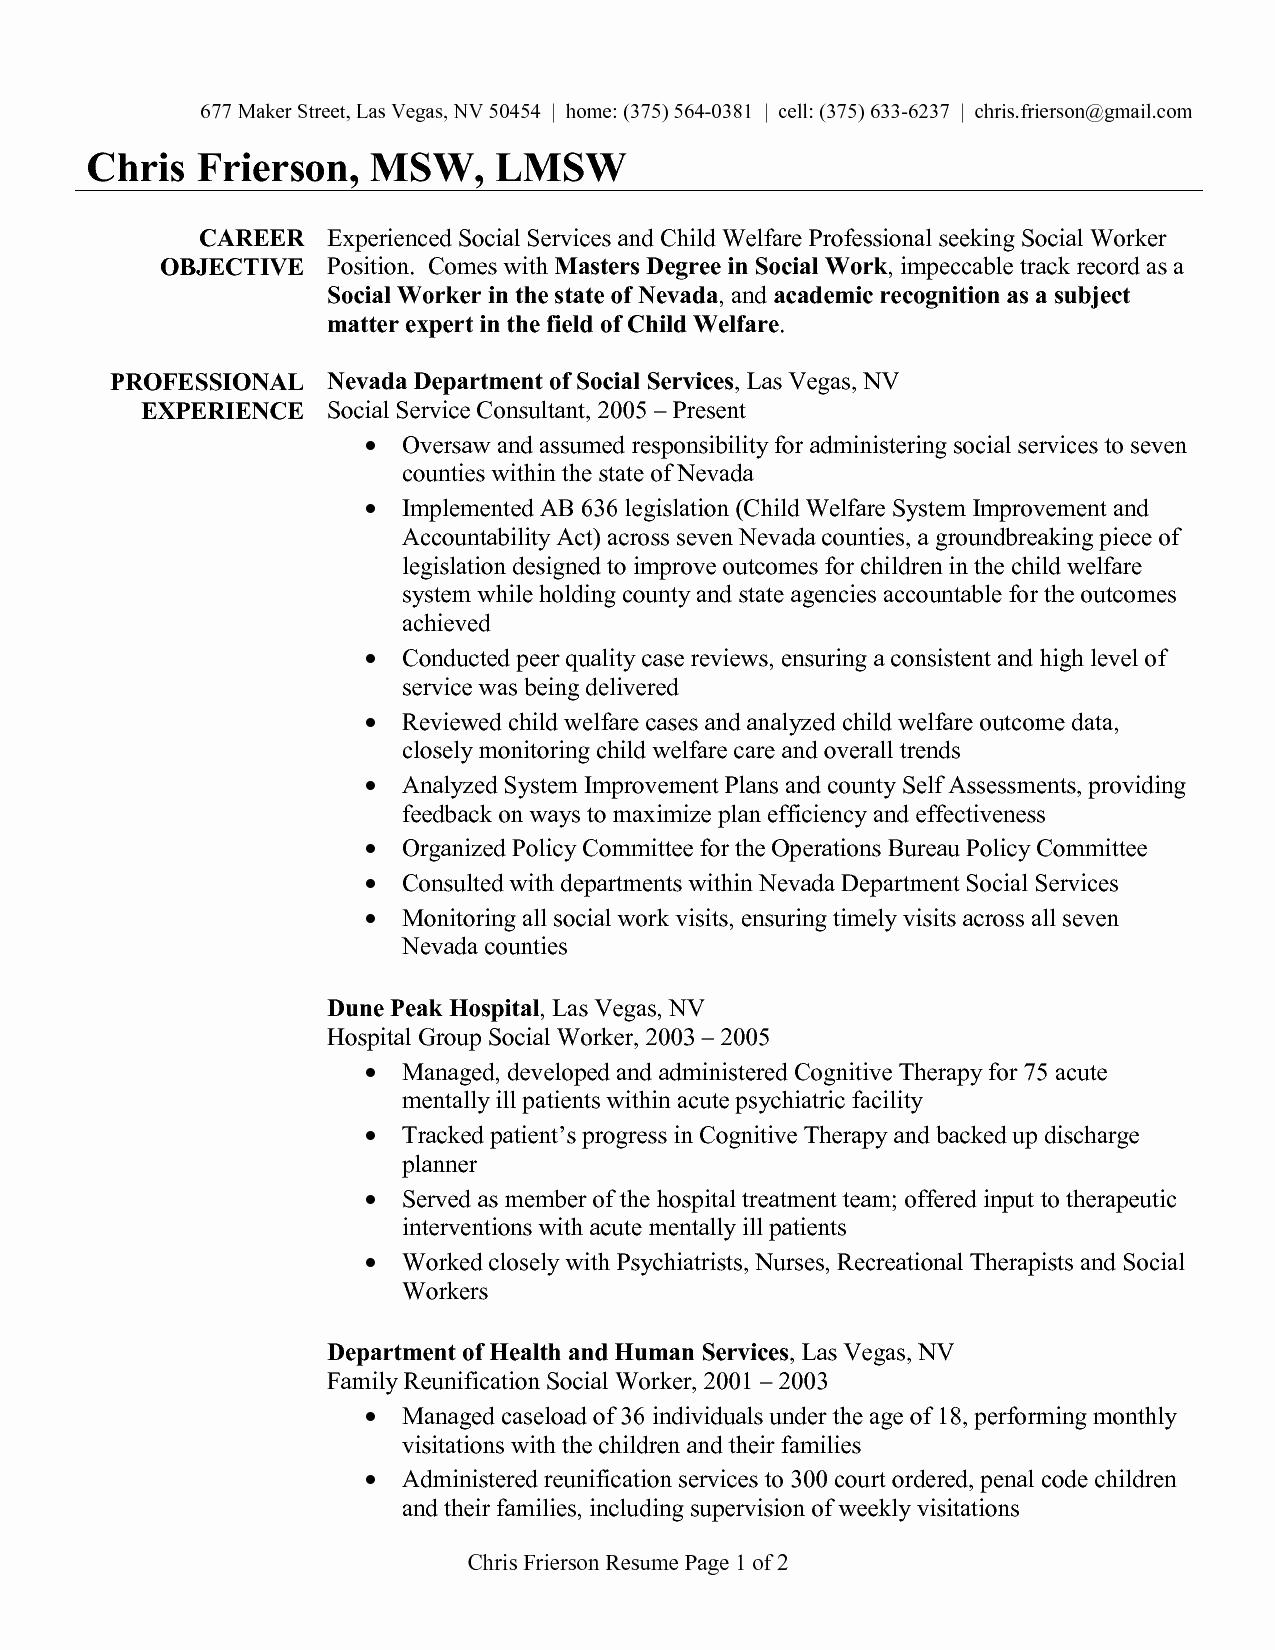 Resume for Construction Worker - 42 Inspirational Construction Resume Examples Resume Templates